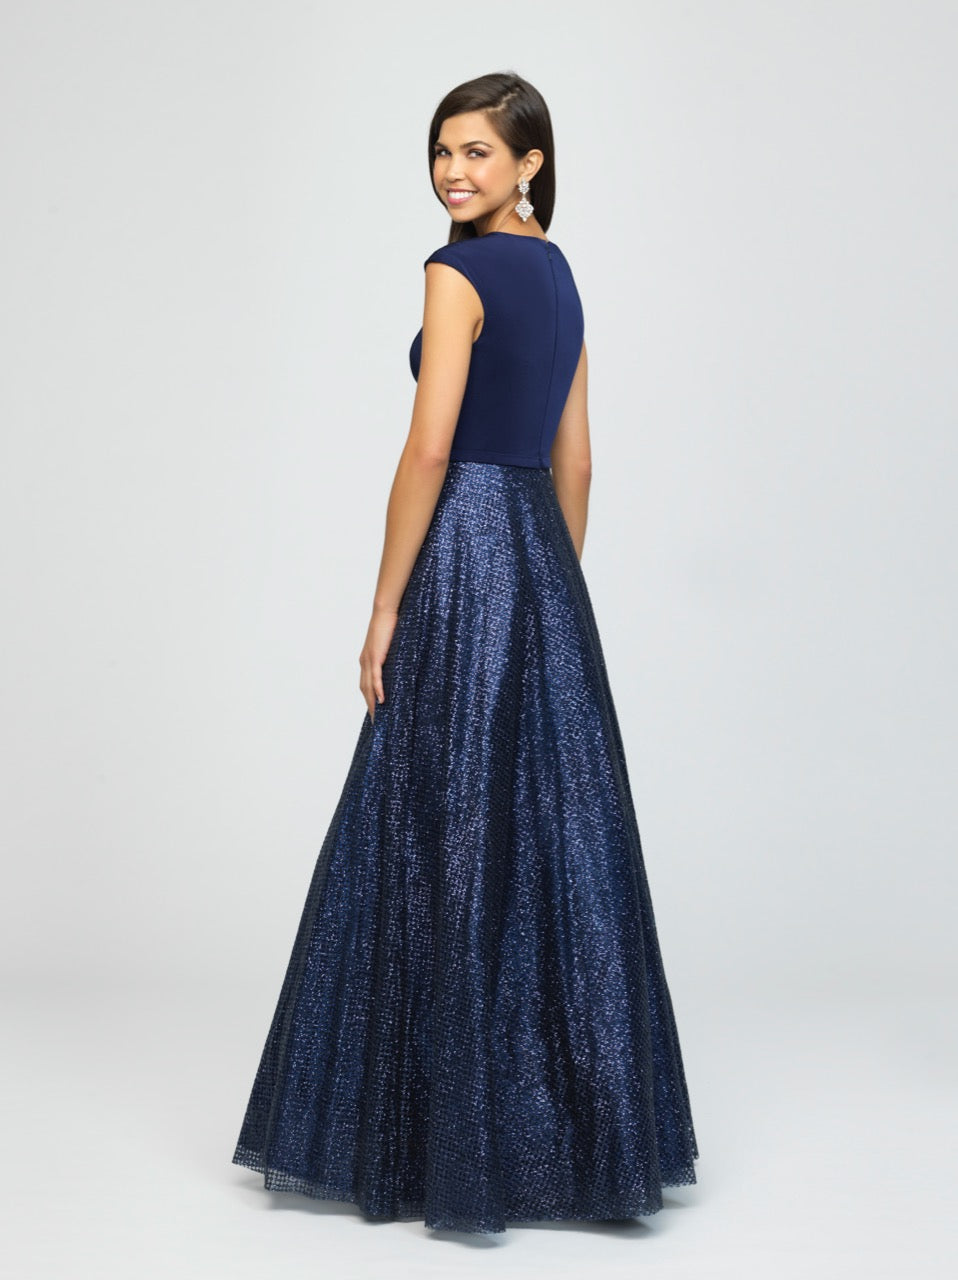 Allure 19-250 Modest Prom Dress